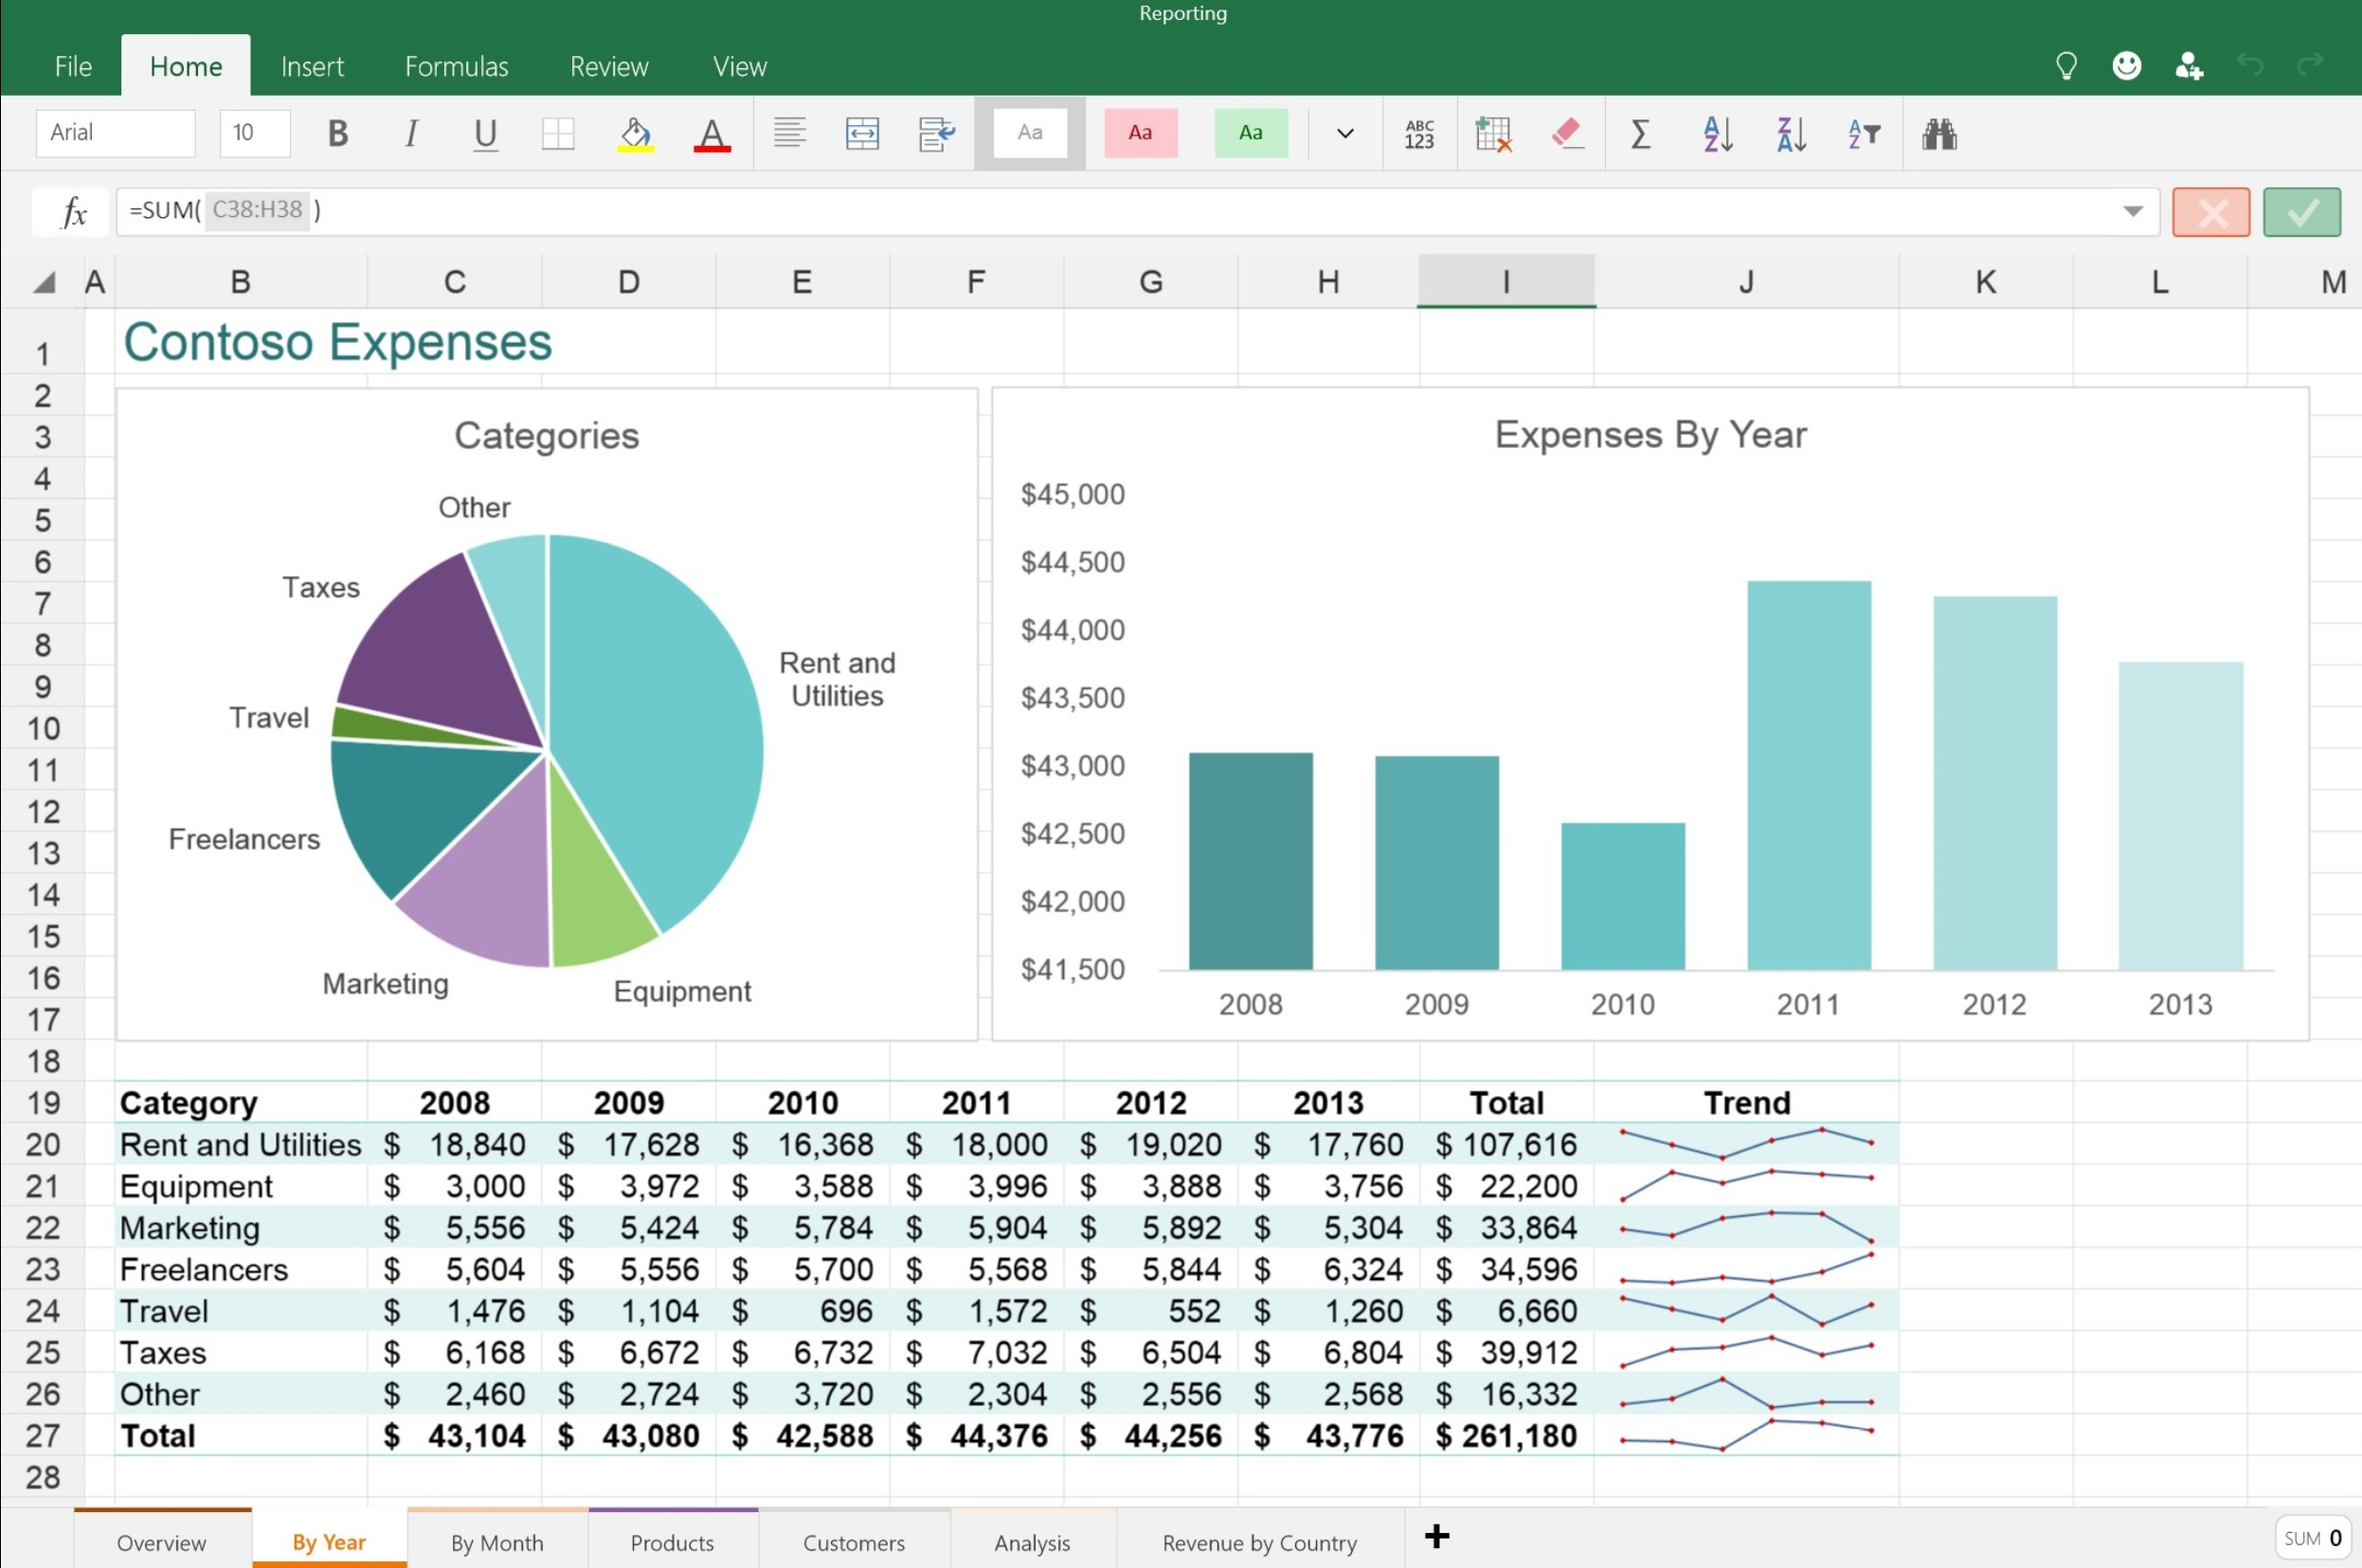 Ediblewildsus  Remarkable Features Available In The New Word Excel And Powerpoint Apps For  With Great Excel Touch App  With Lovely Overtime Calculation In Excel Also Excel Vba Course Online In Addition How To Combine Charts In Excel And Salary Sheet Sample In Excel As Well As Shortcut For Sum In Excel Additionally Excel Corrupt File From Mspowerusercom With Ediblewildsus  Great Features Available In The New Word Excel And Powerpoint Apps For  With Lovely Excel Touch App  And Remarkable Overtime Calculation In Excel Also Excel Vba Course Online In Addition How To Combine Charts In Excel From Mspowerusercom